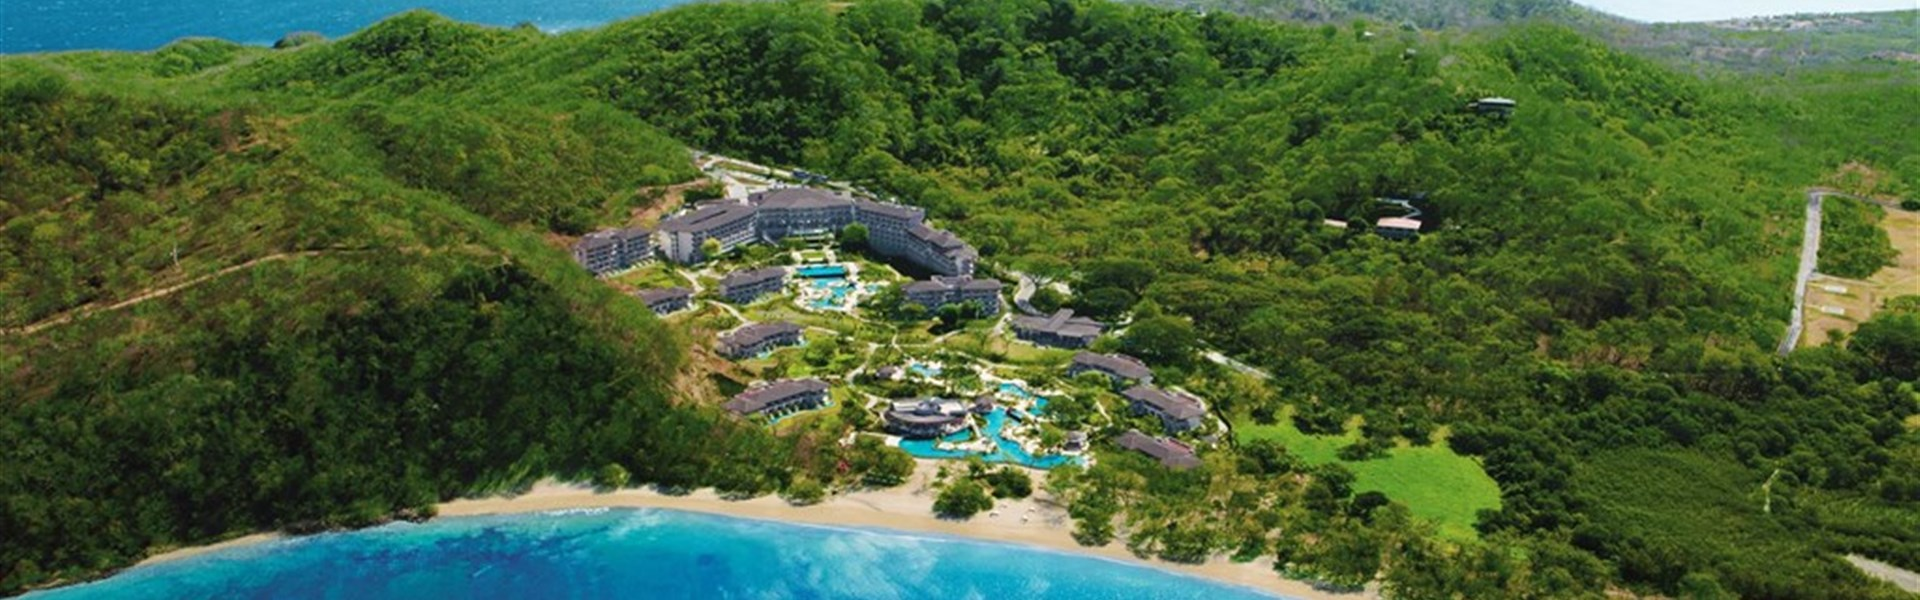 Marco Polo - Dreams Las Mareas Costa Rica 5* - All Inclusive -